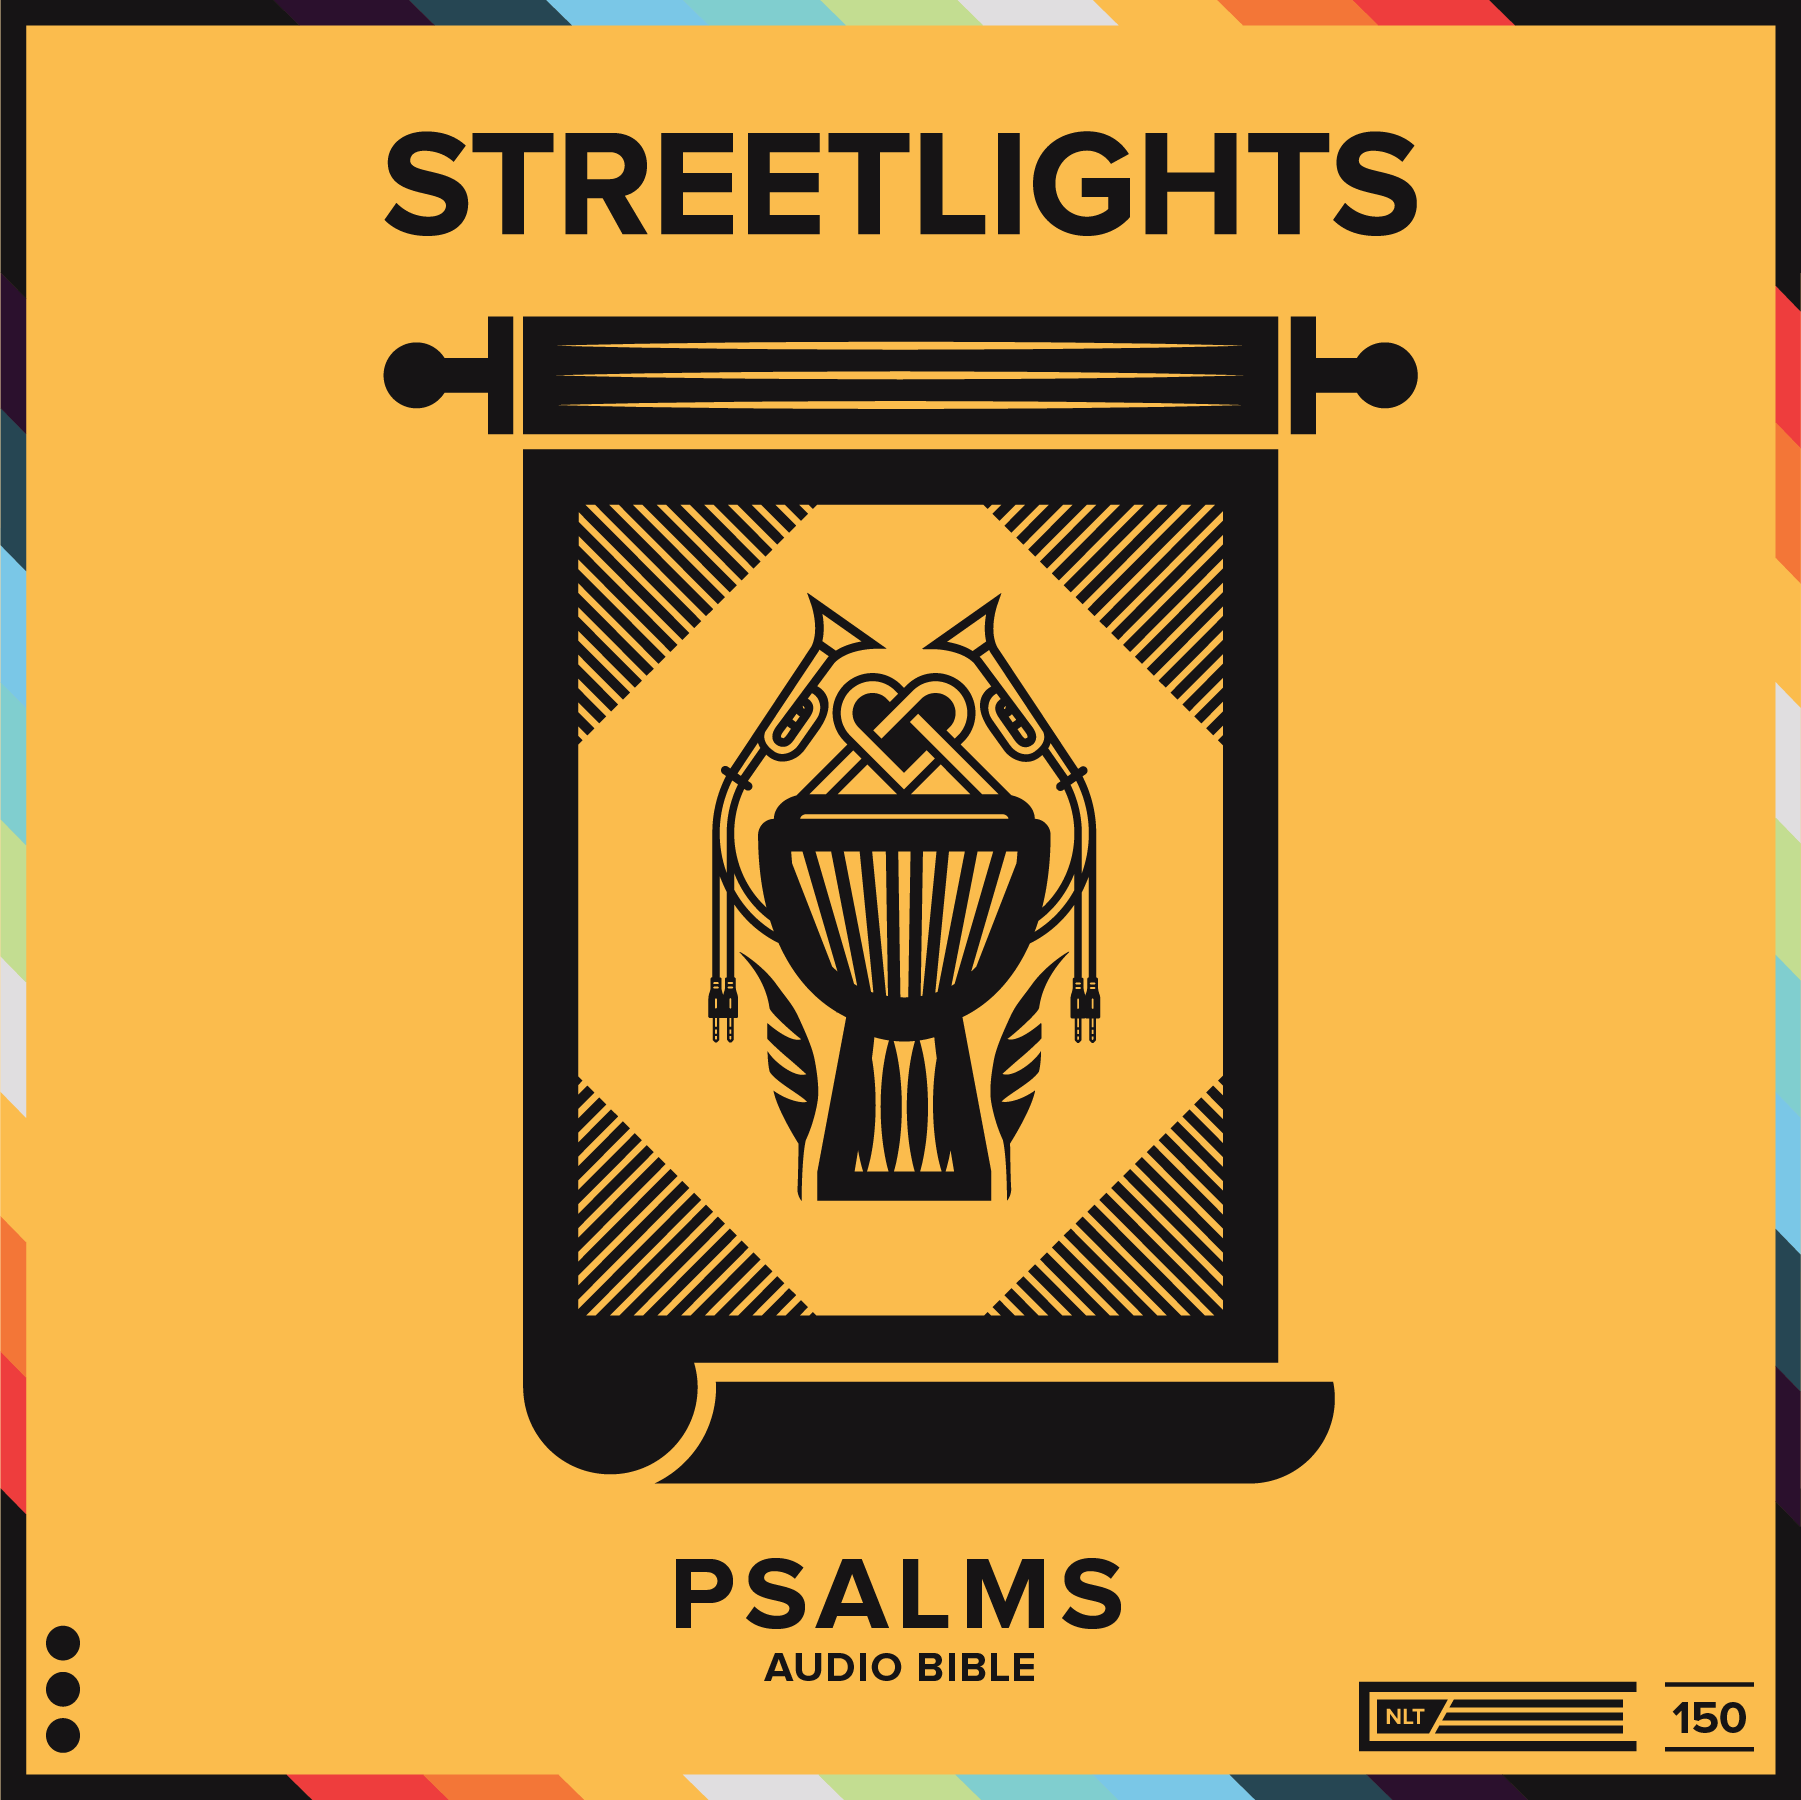 Psalms Cover_English_Psalms Cover_English All.png